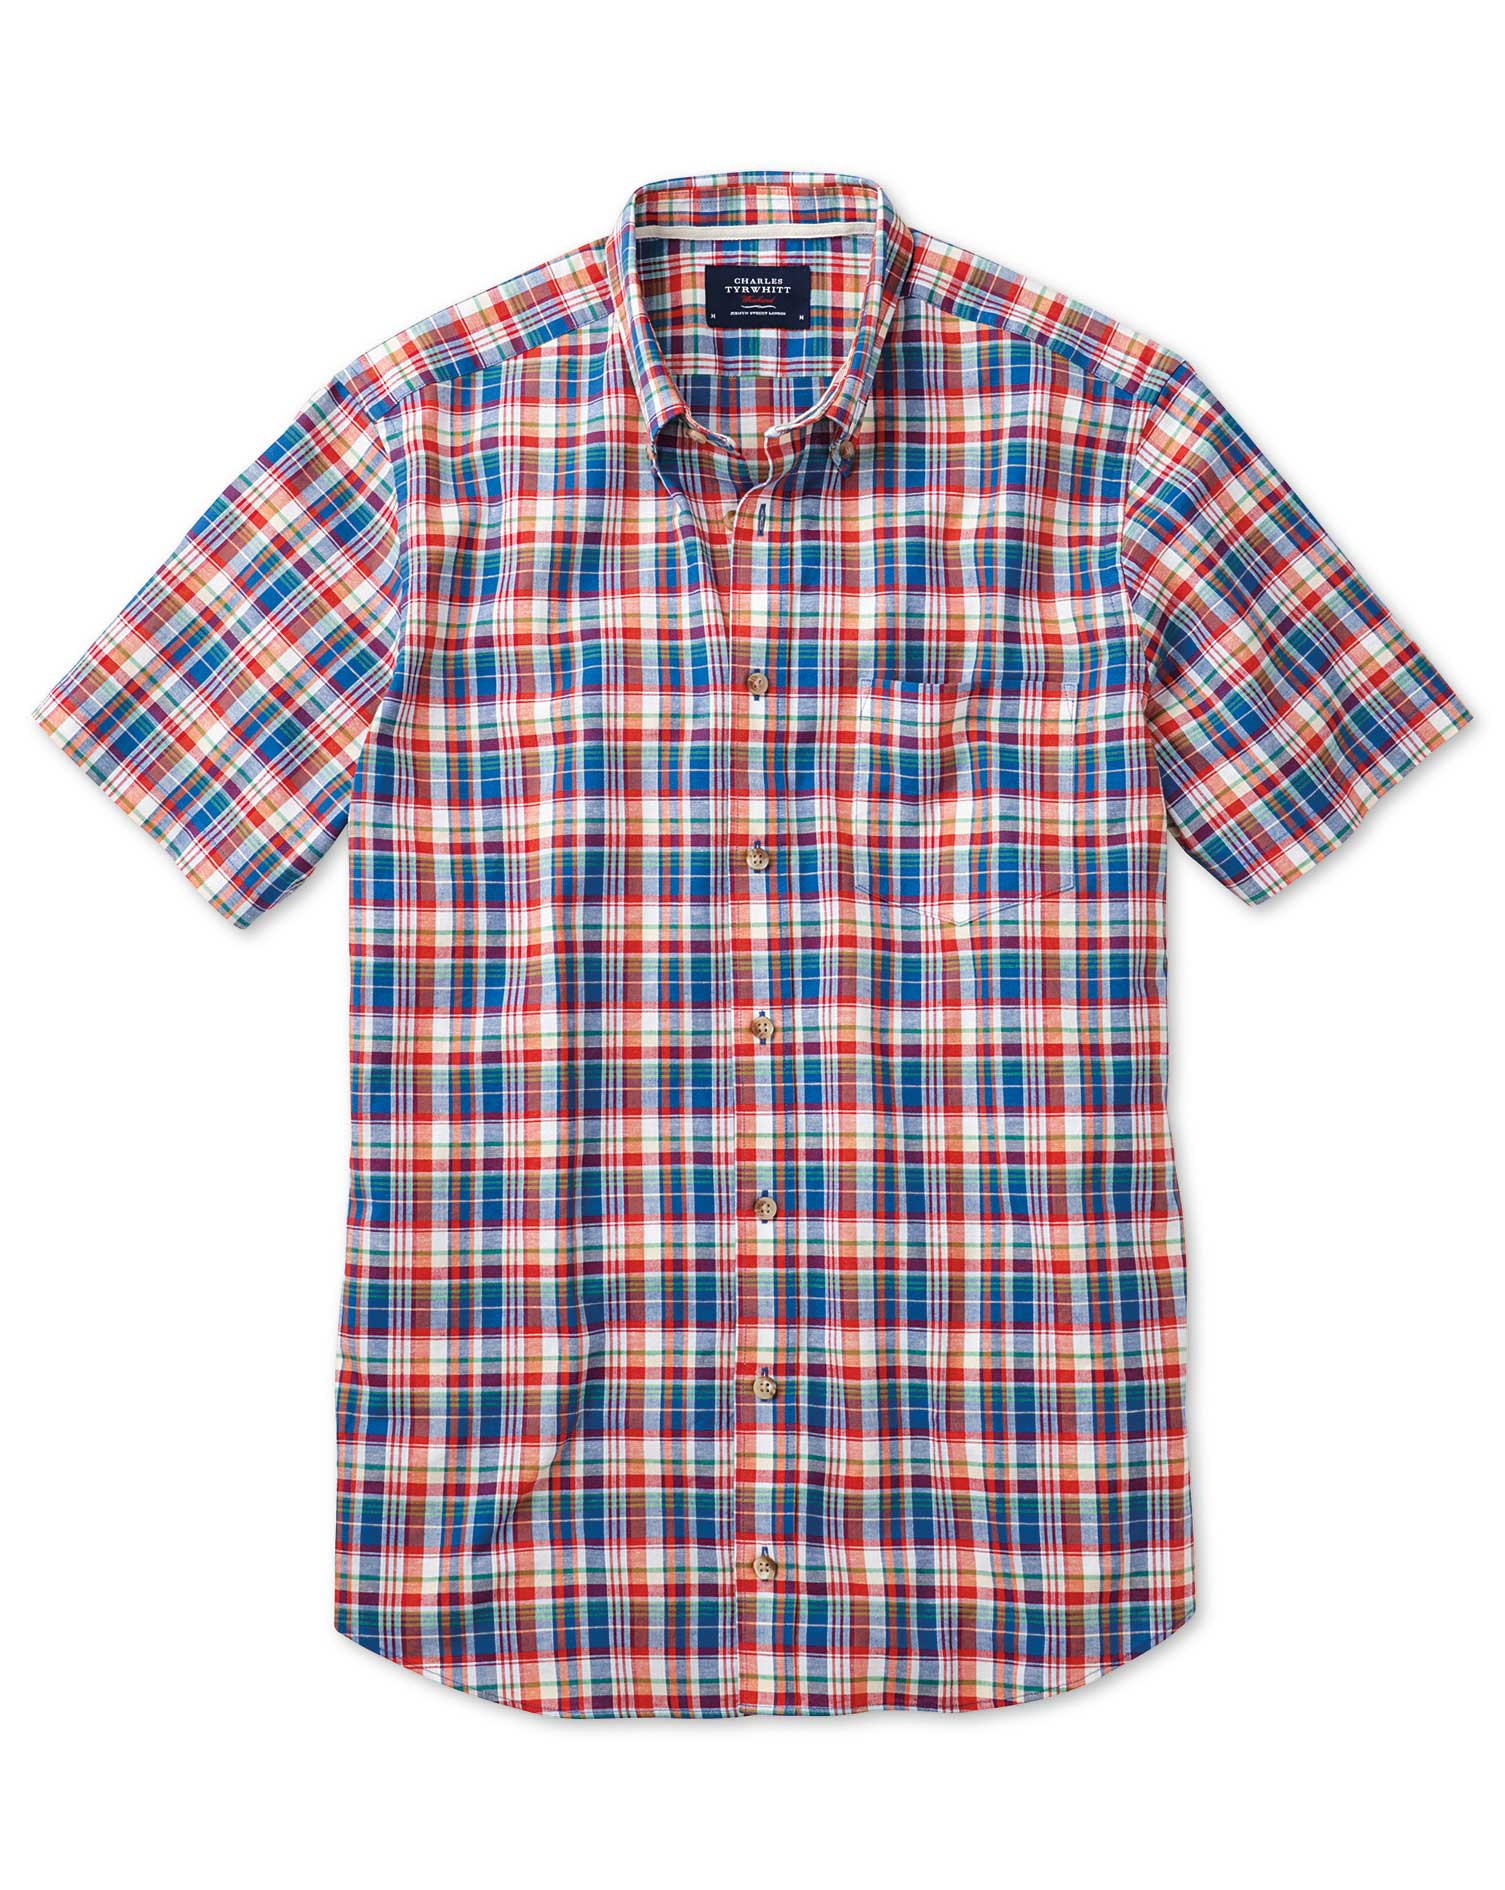 Classic Fit Short Sleeve Orange and Blue Check Shirt Single Cuff Size Large by Charles Tyrwhitt